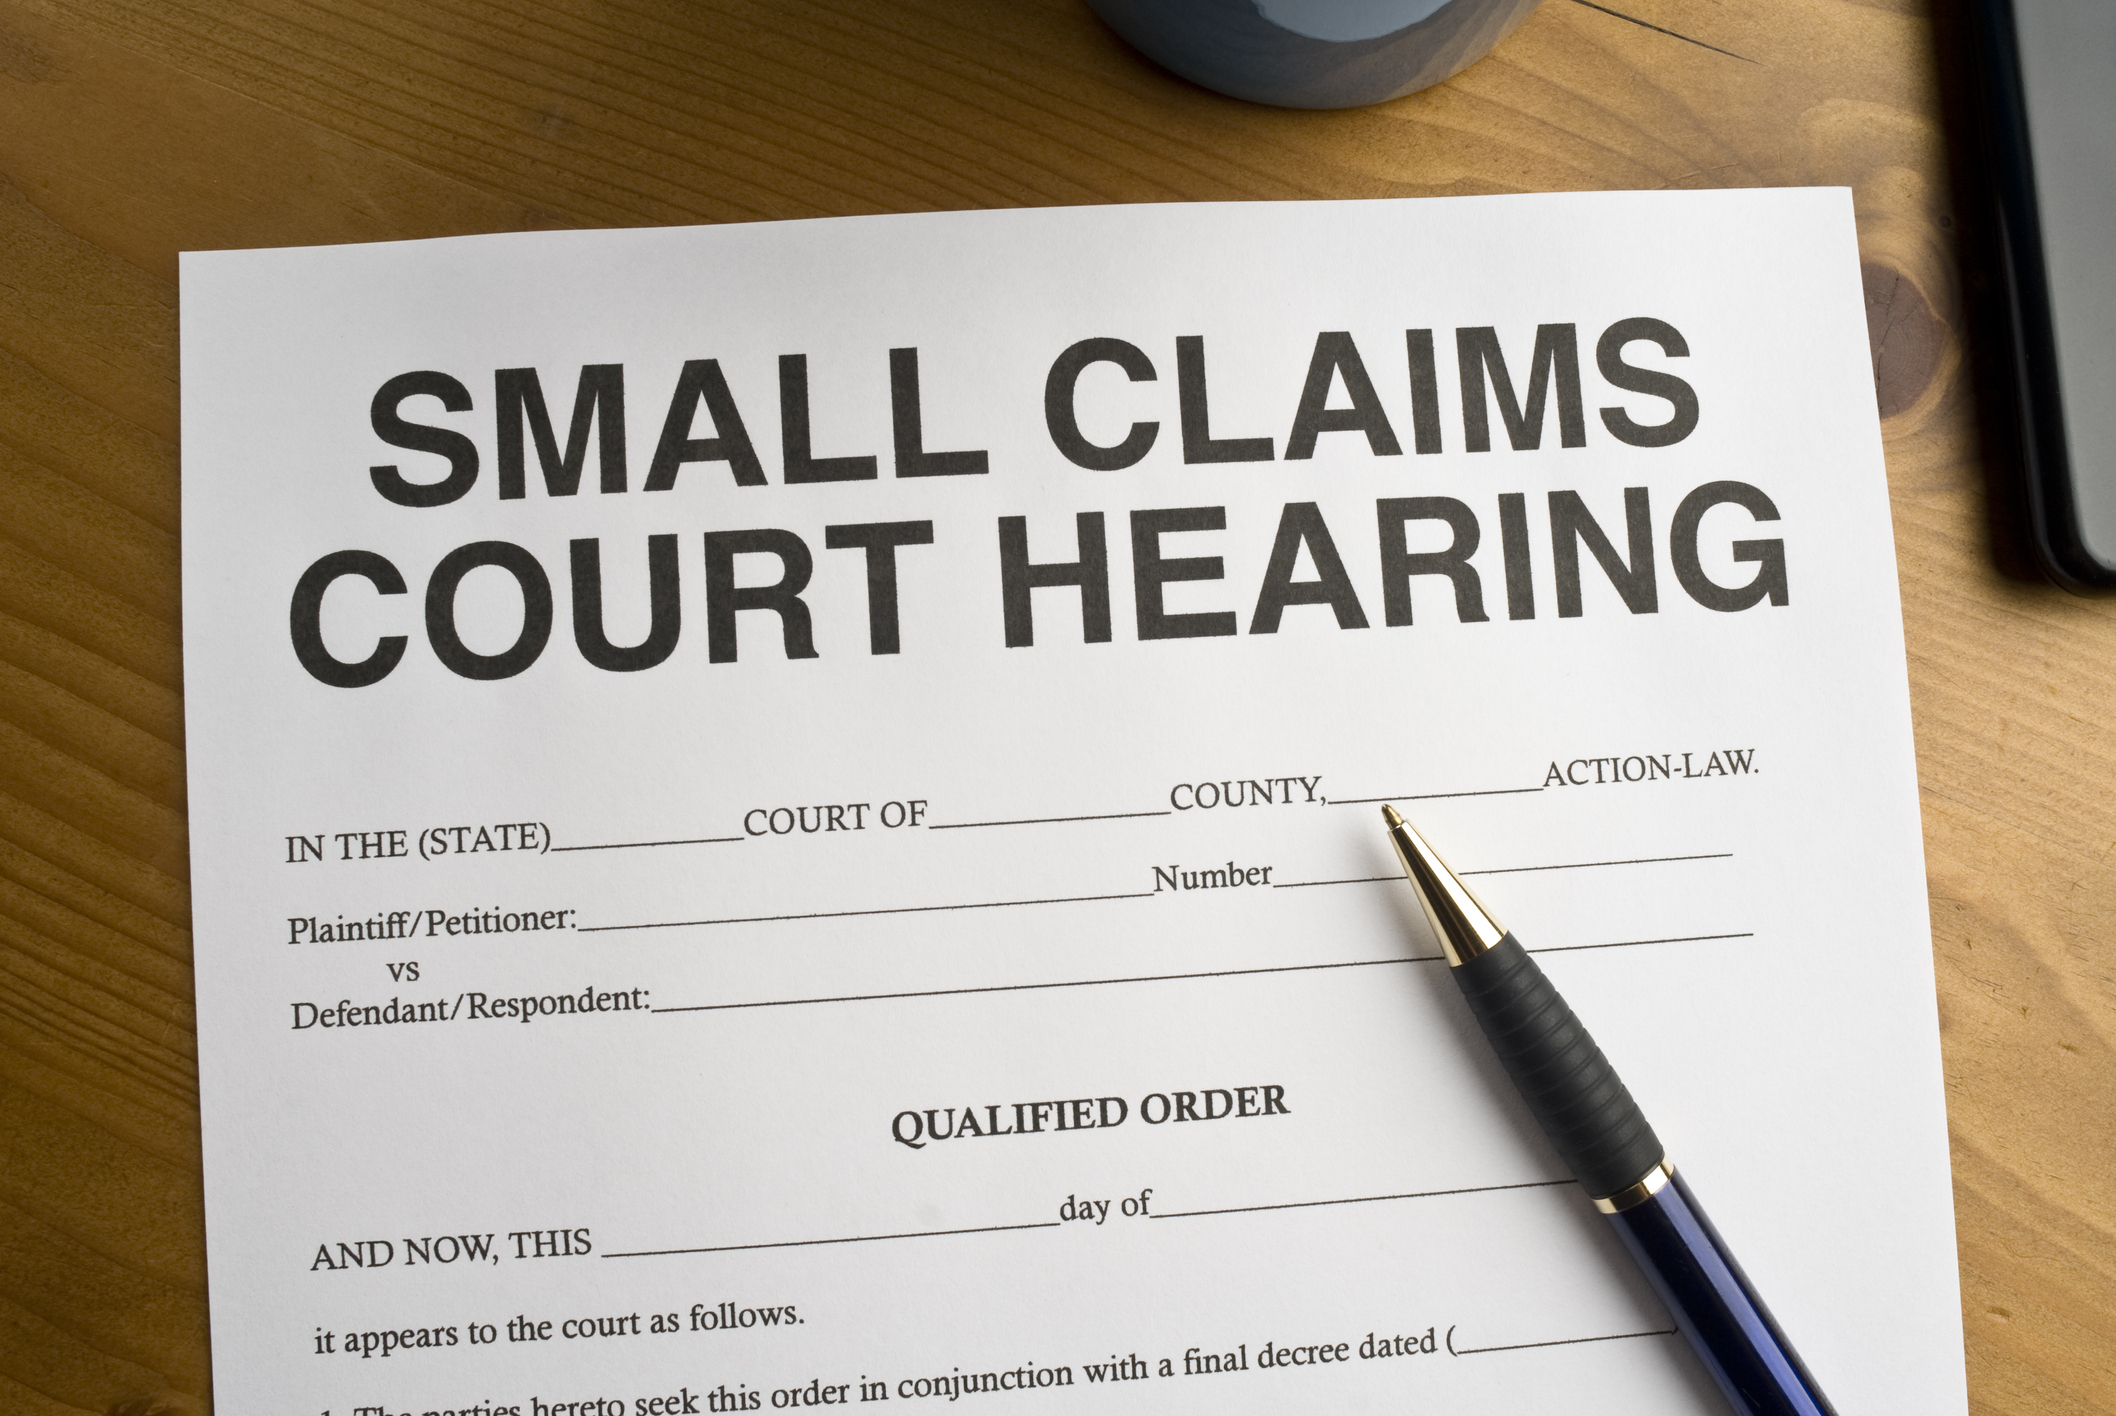 you can ask for lost wages in a small claims court hearing